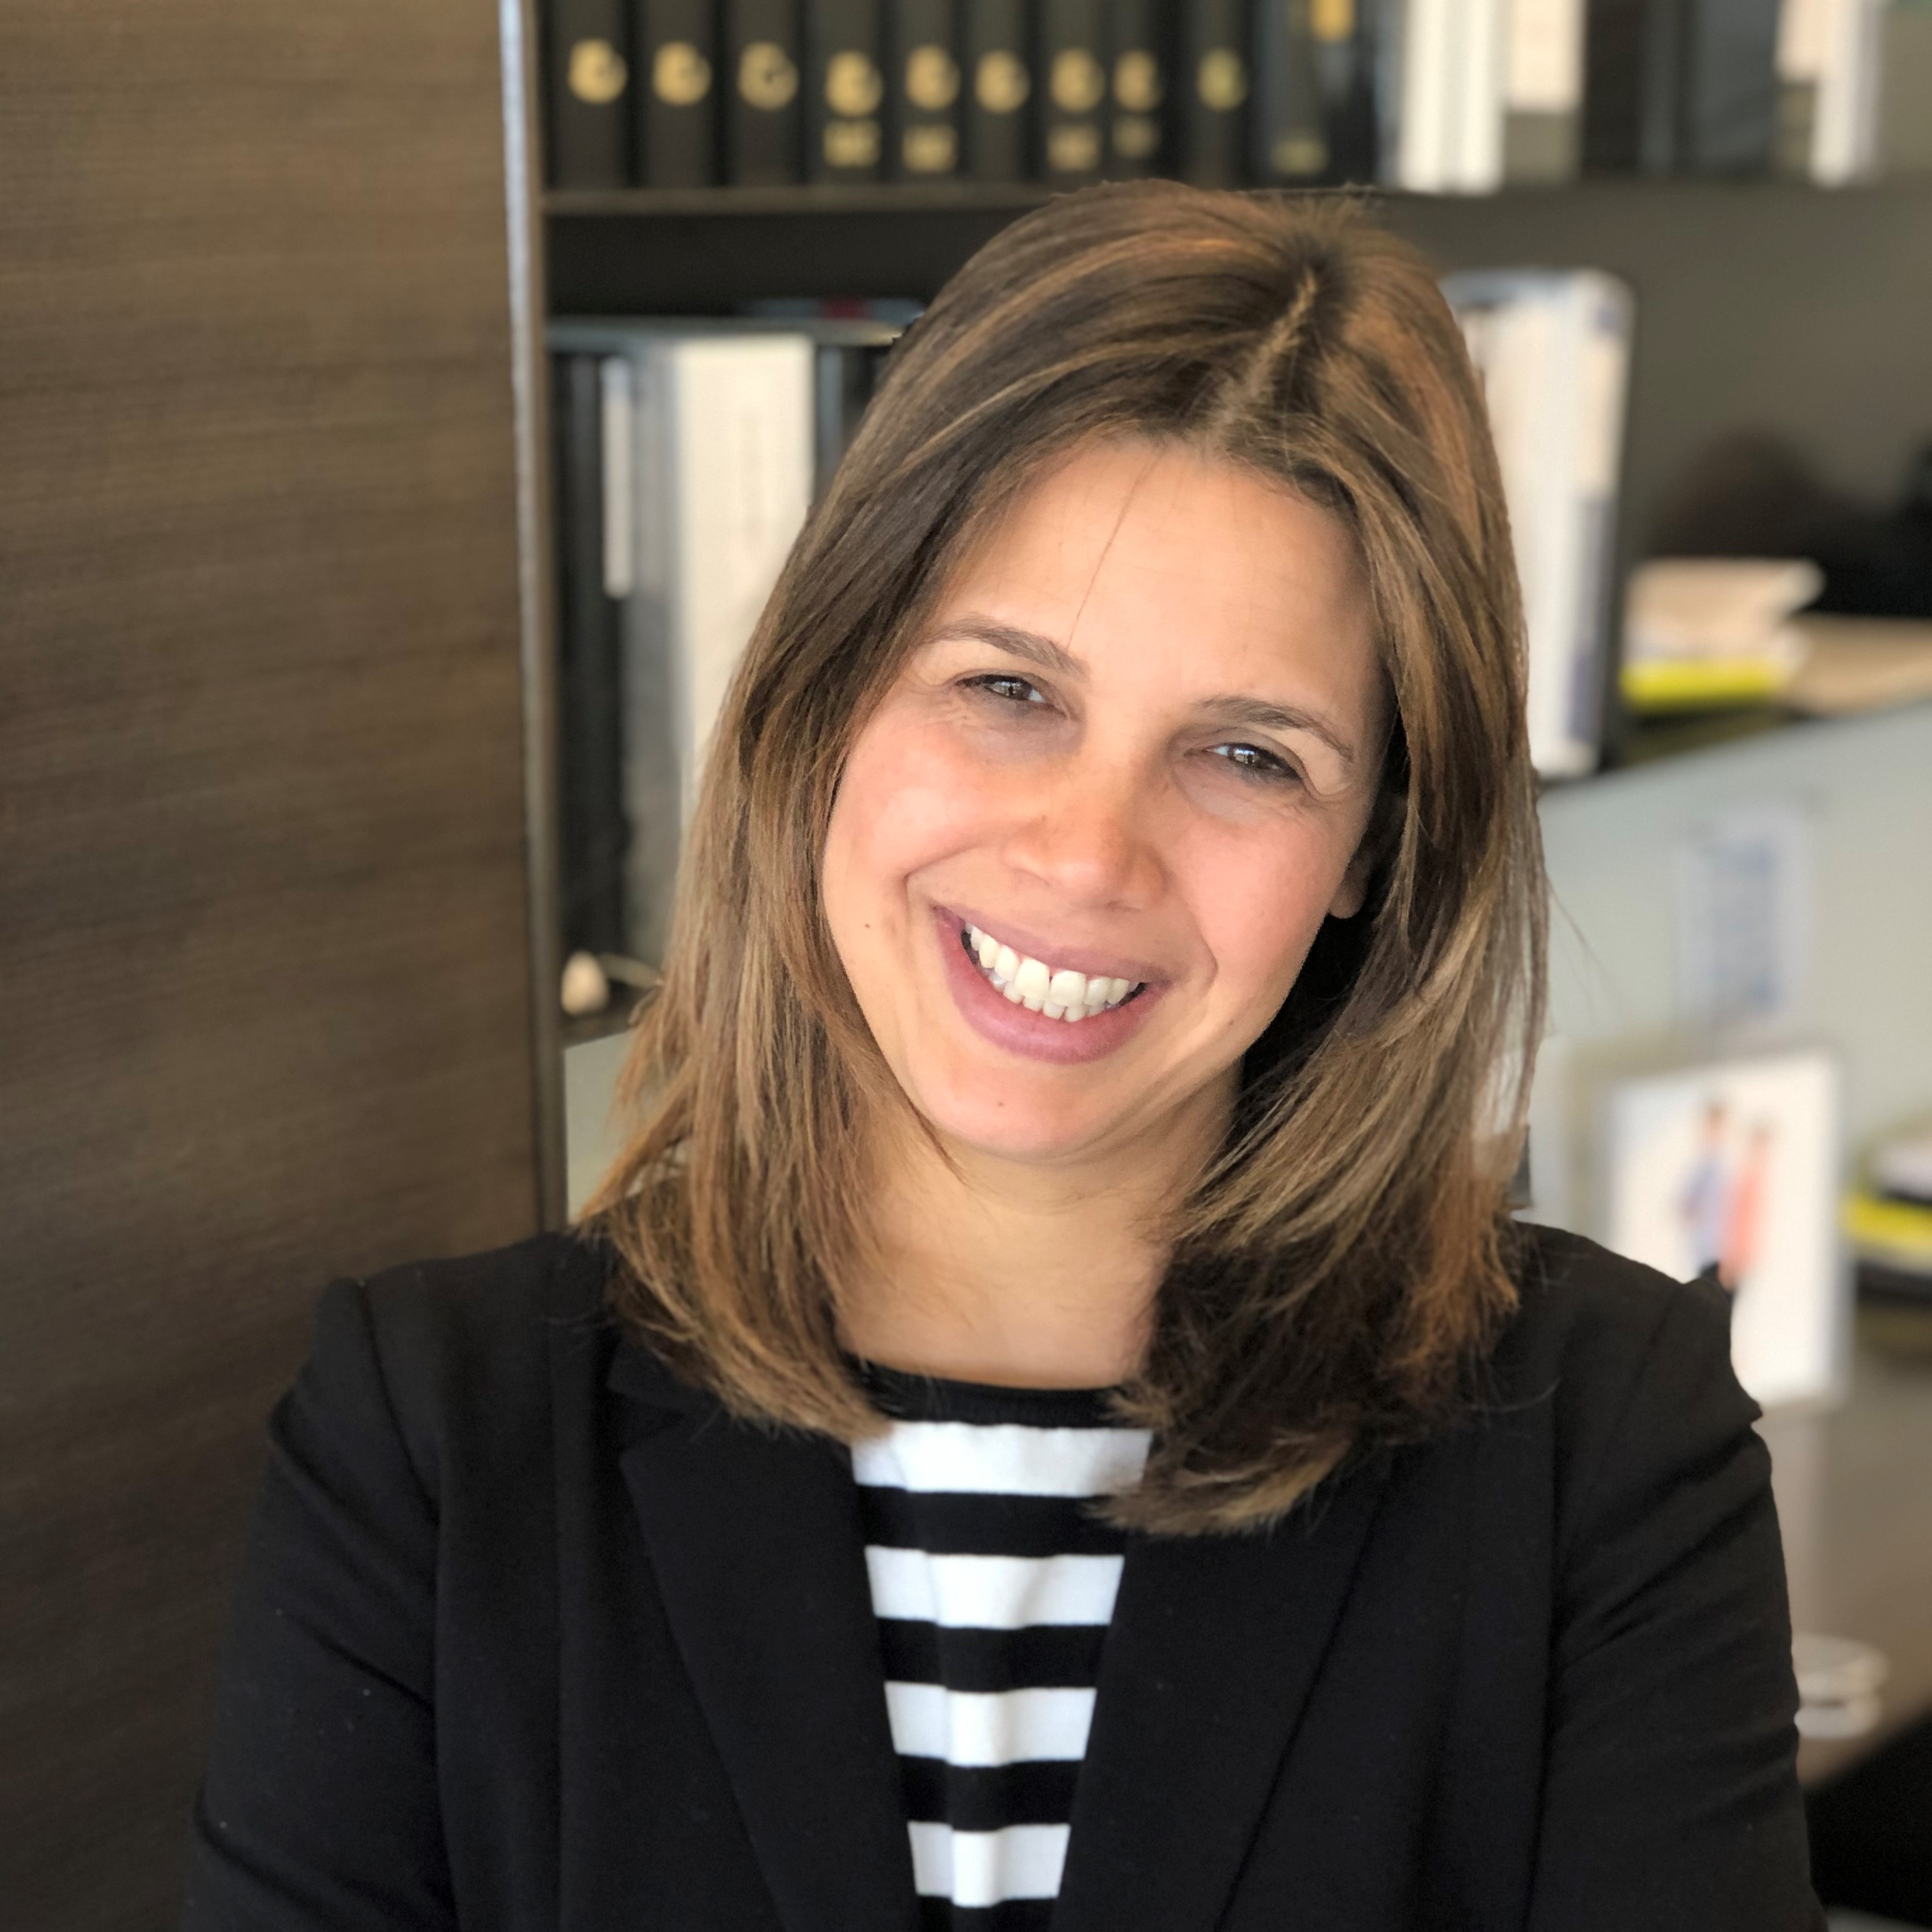 Nikol Thompson - Chief Legal Officer, General Counsel, Deutsch Family Wine & Spirits